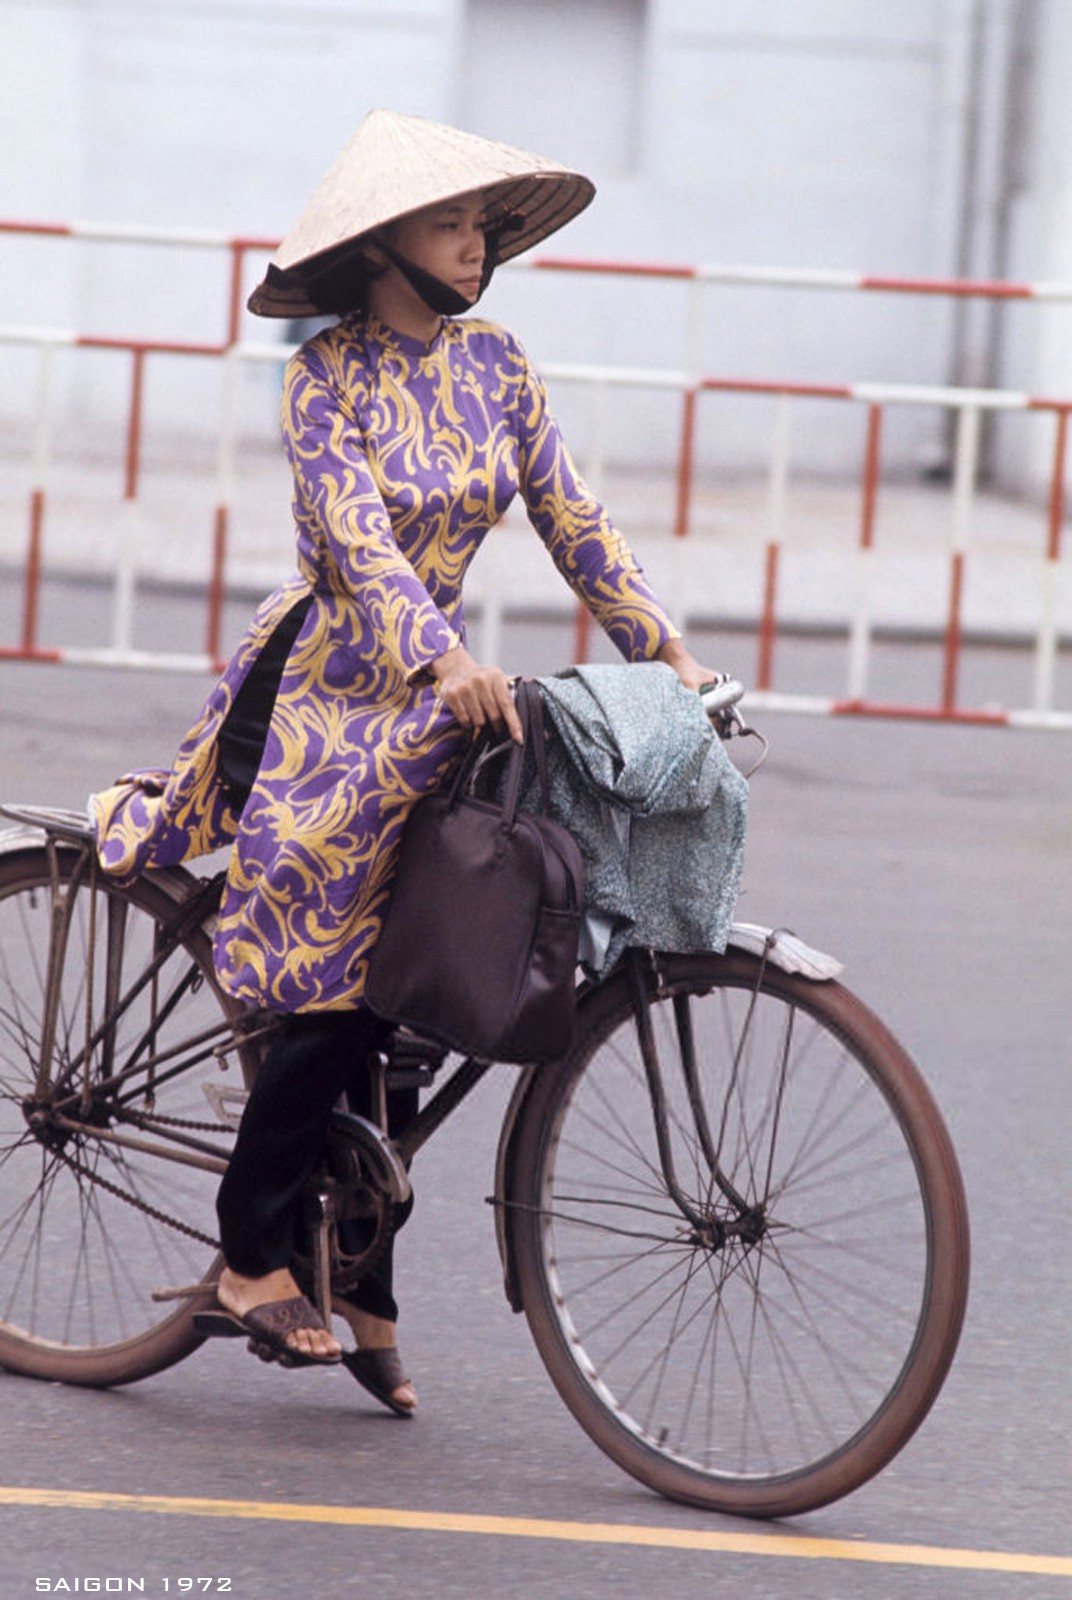 interesting photos of saigon women in 1972 under us photographers lens